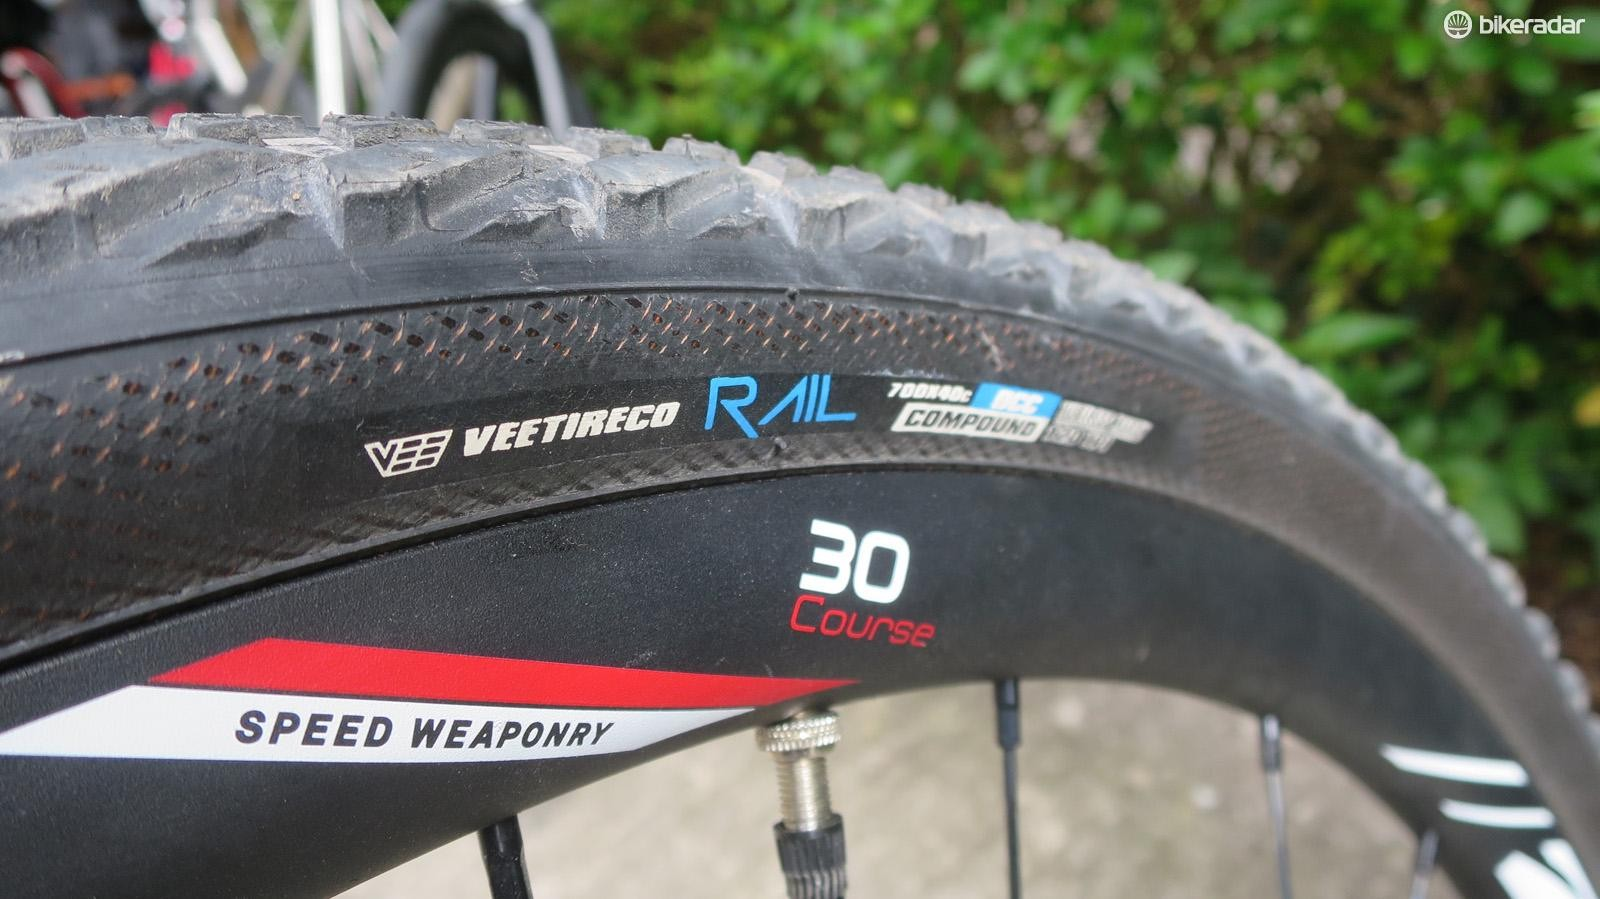 Alloy Zipp 30 disc wheels and Vee's new 40c Rail tyres complete the build